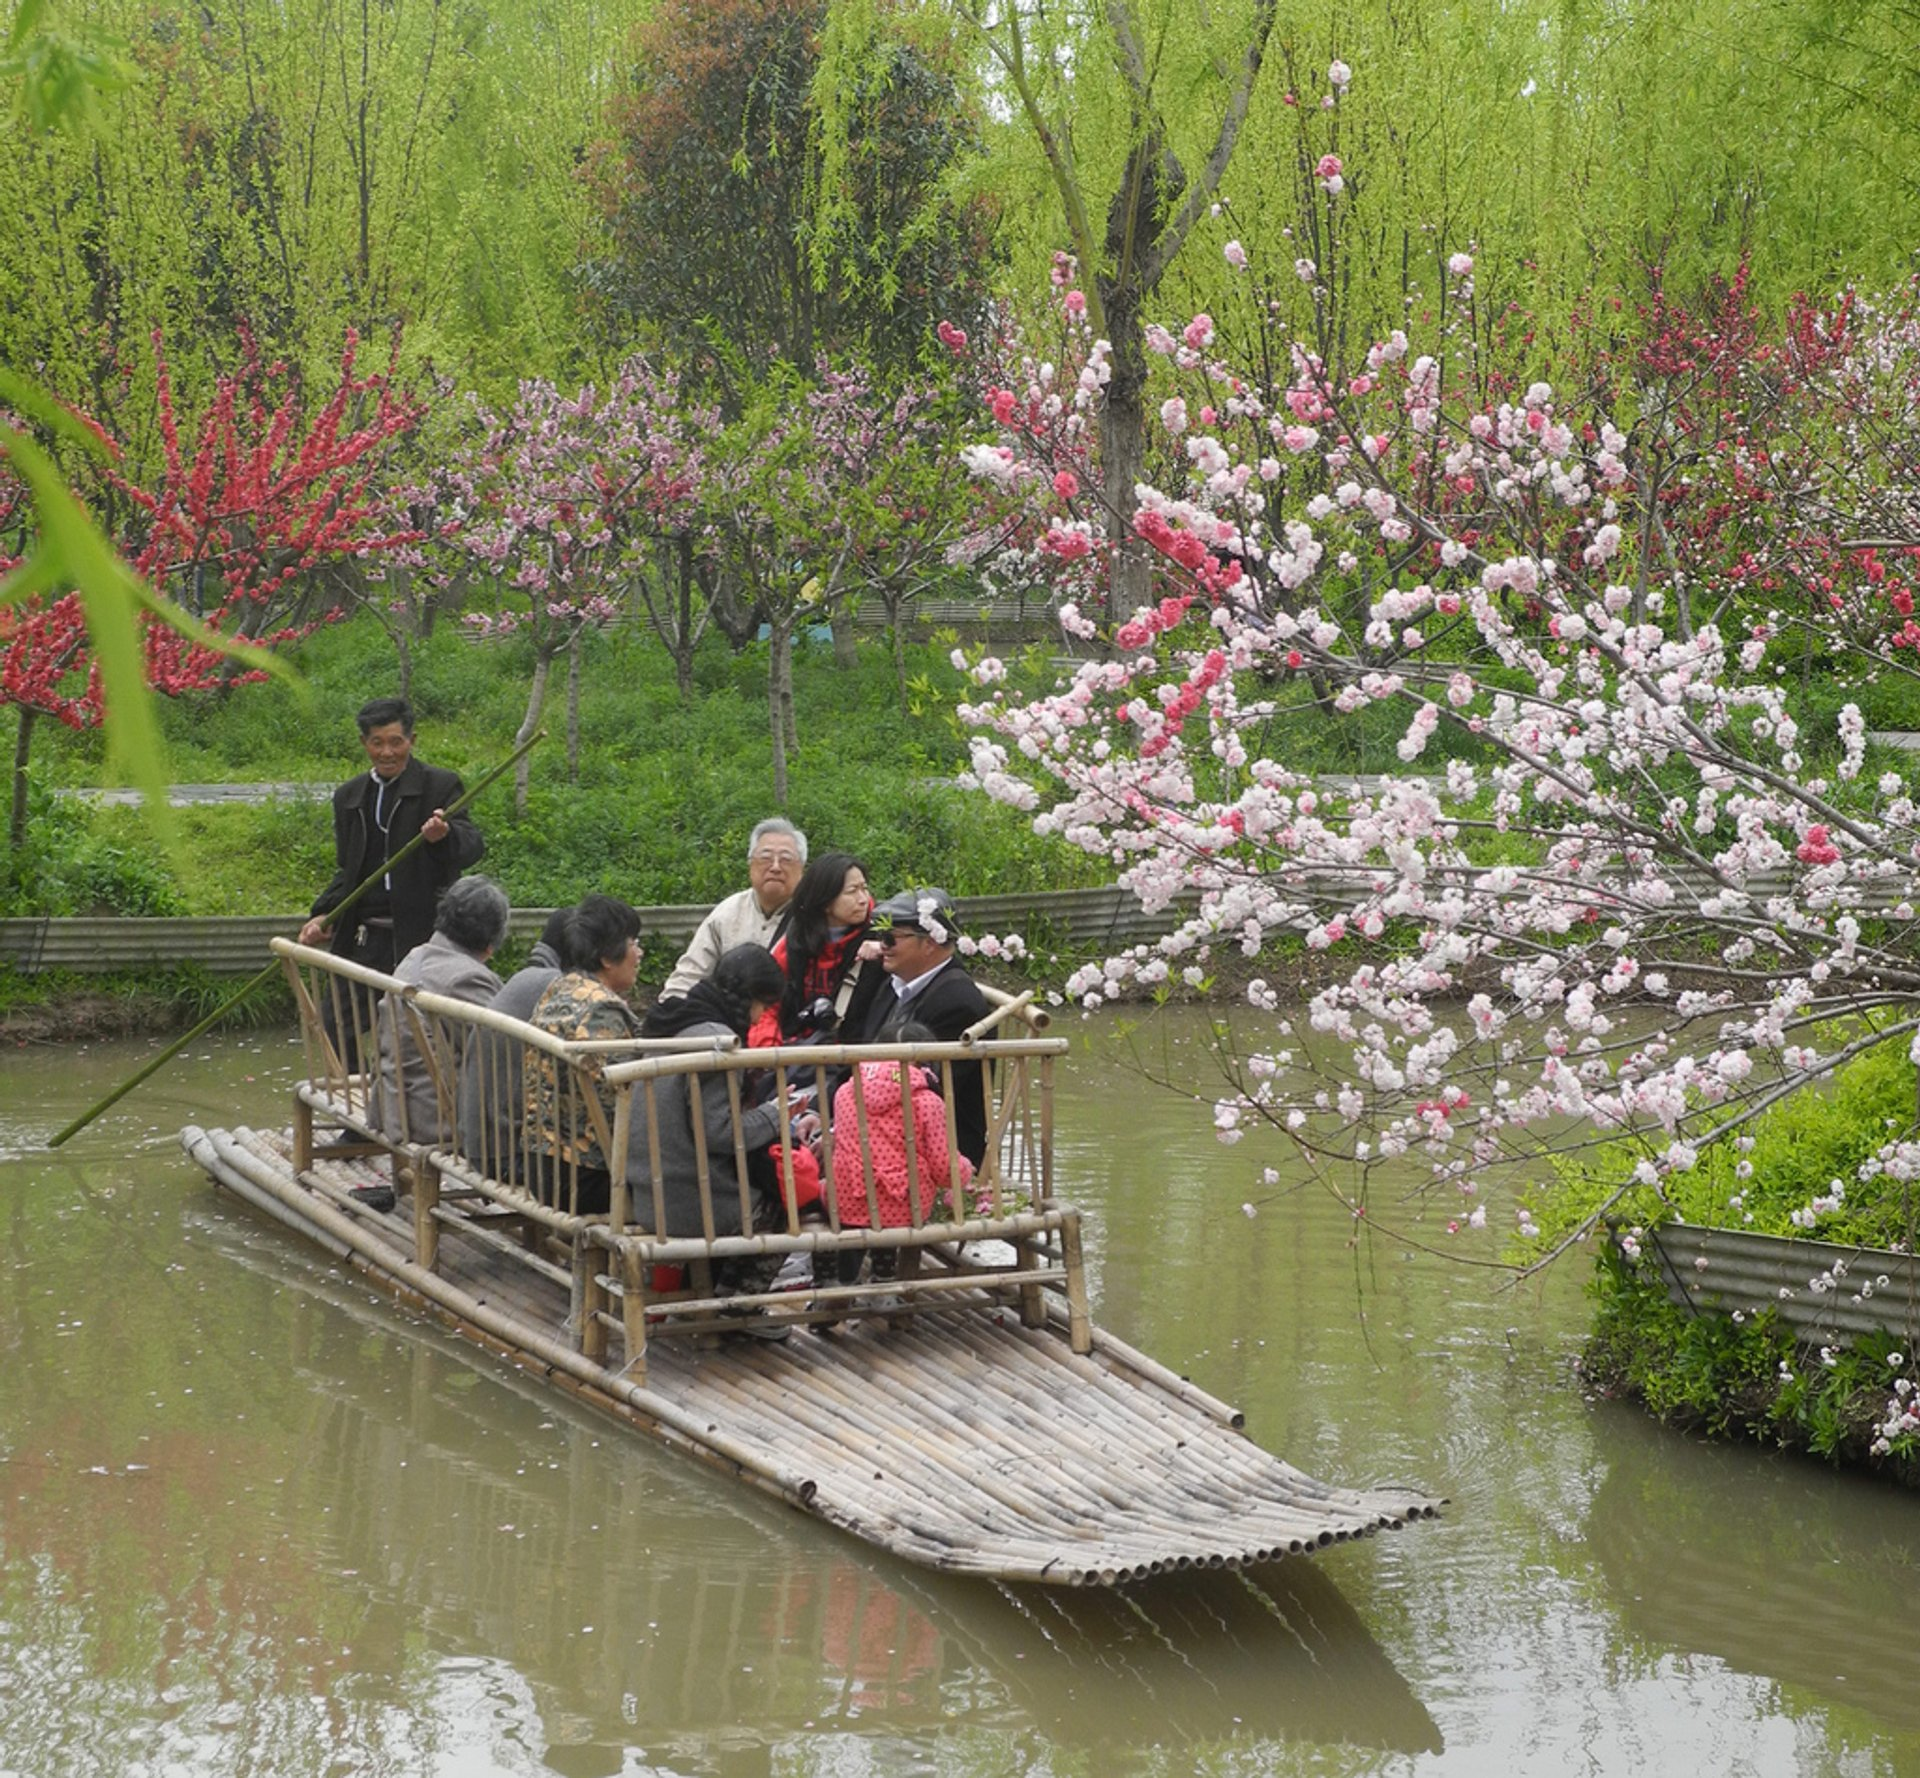 Floating at the Nanhui Peach Blossom Festival in Nanhui, China 2020